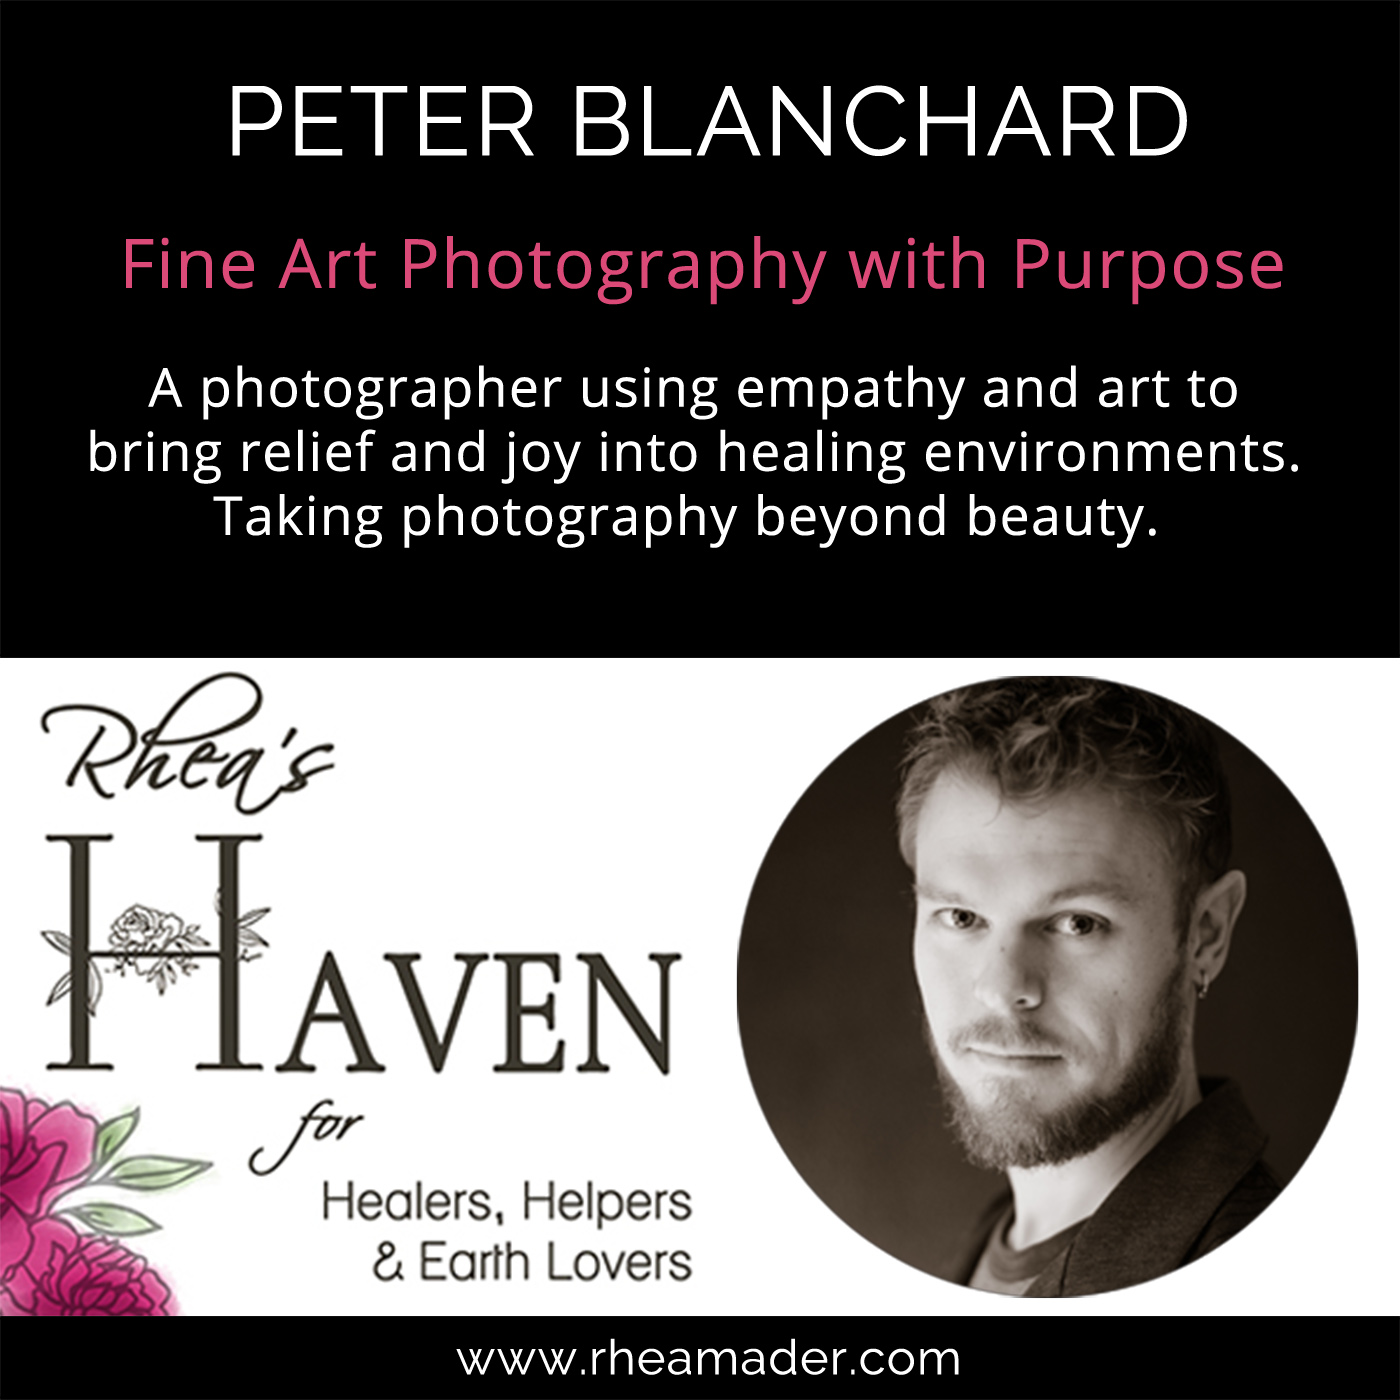 PETER BLANCHARD: Nature Photography and Healing Art